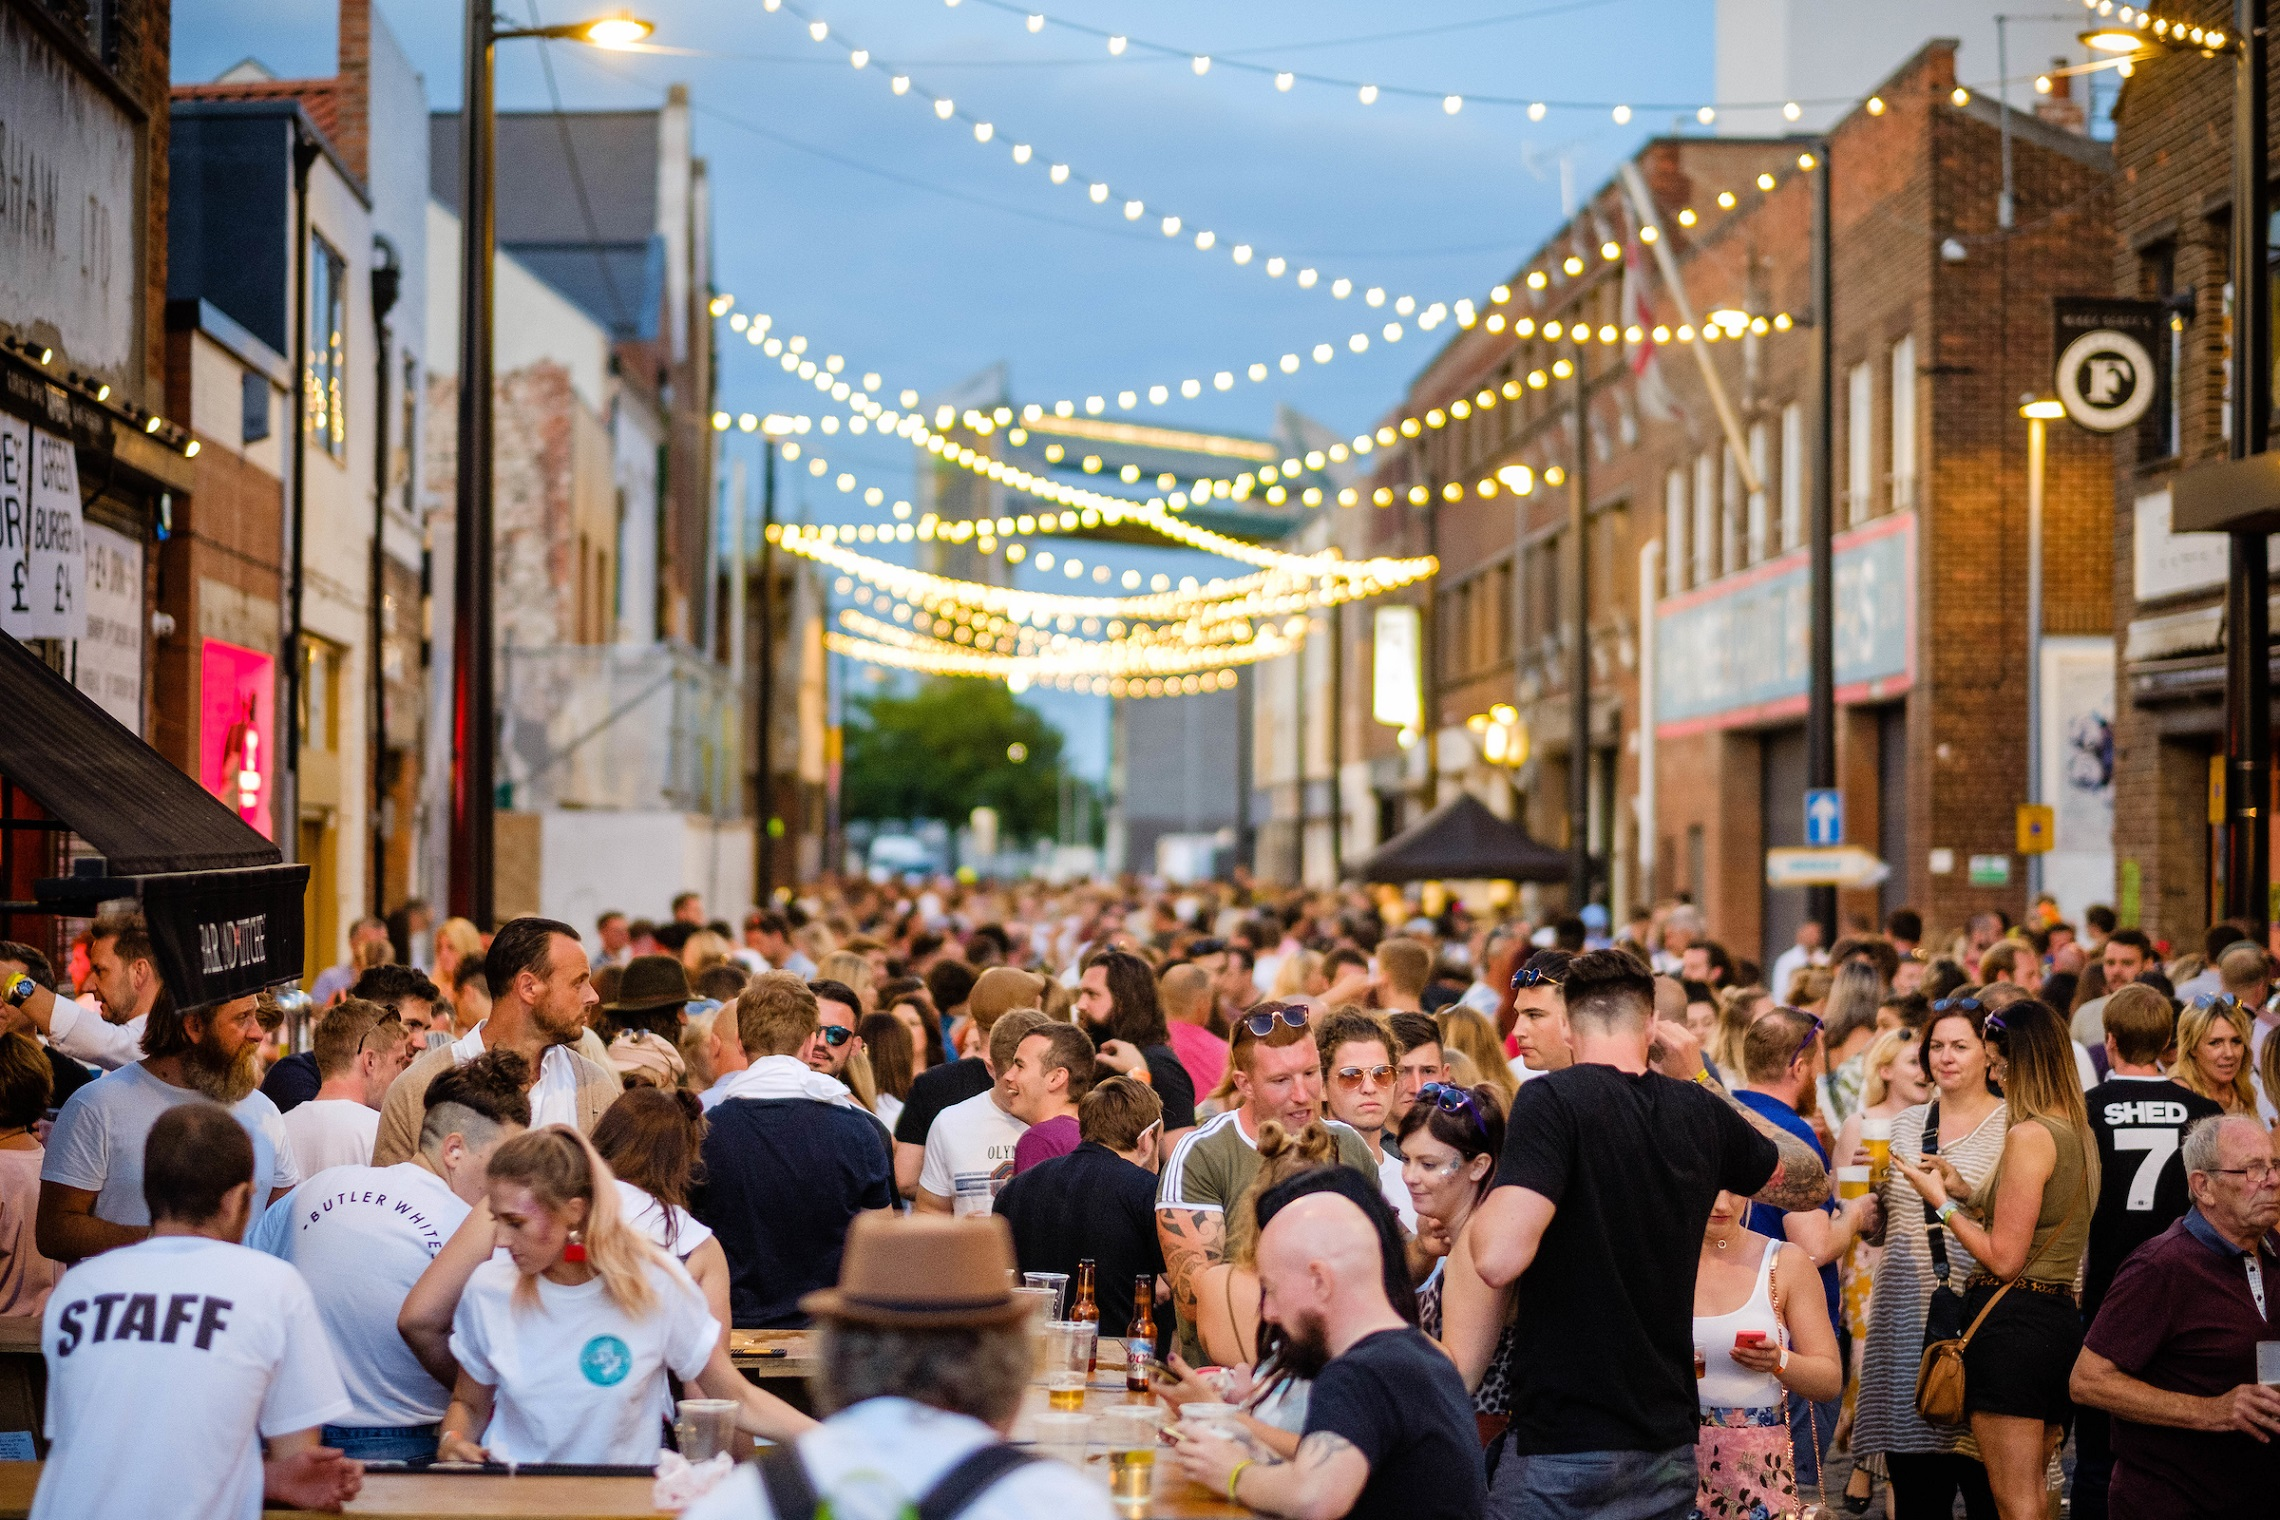 Crowd numbers for this year's Humber Street Sesh are expected to rival the 32,000 who attended the festival in 2018.